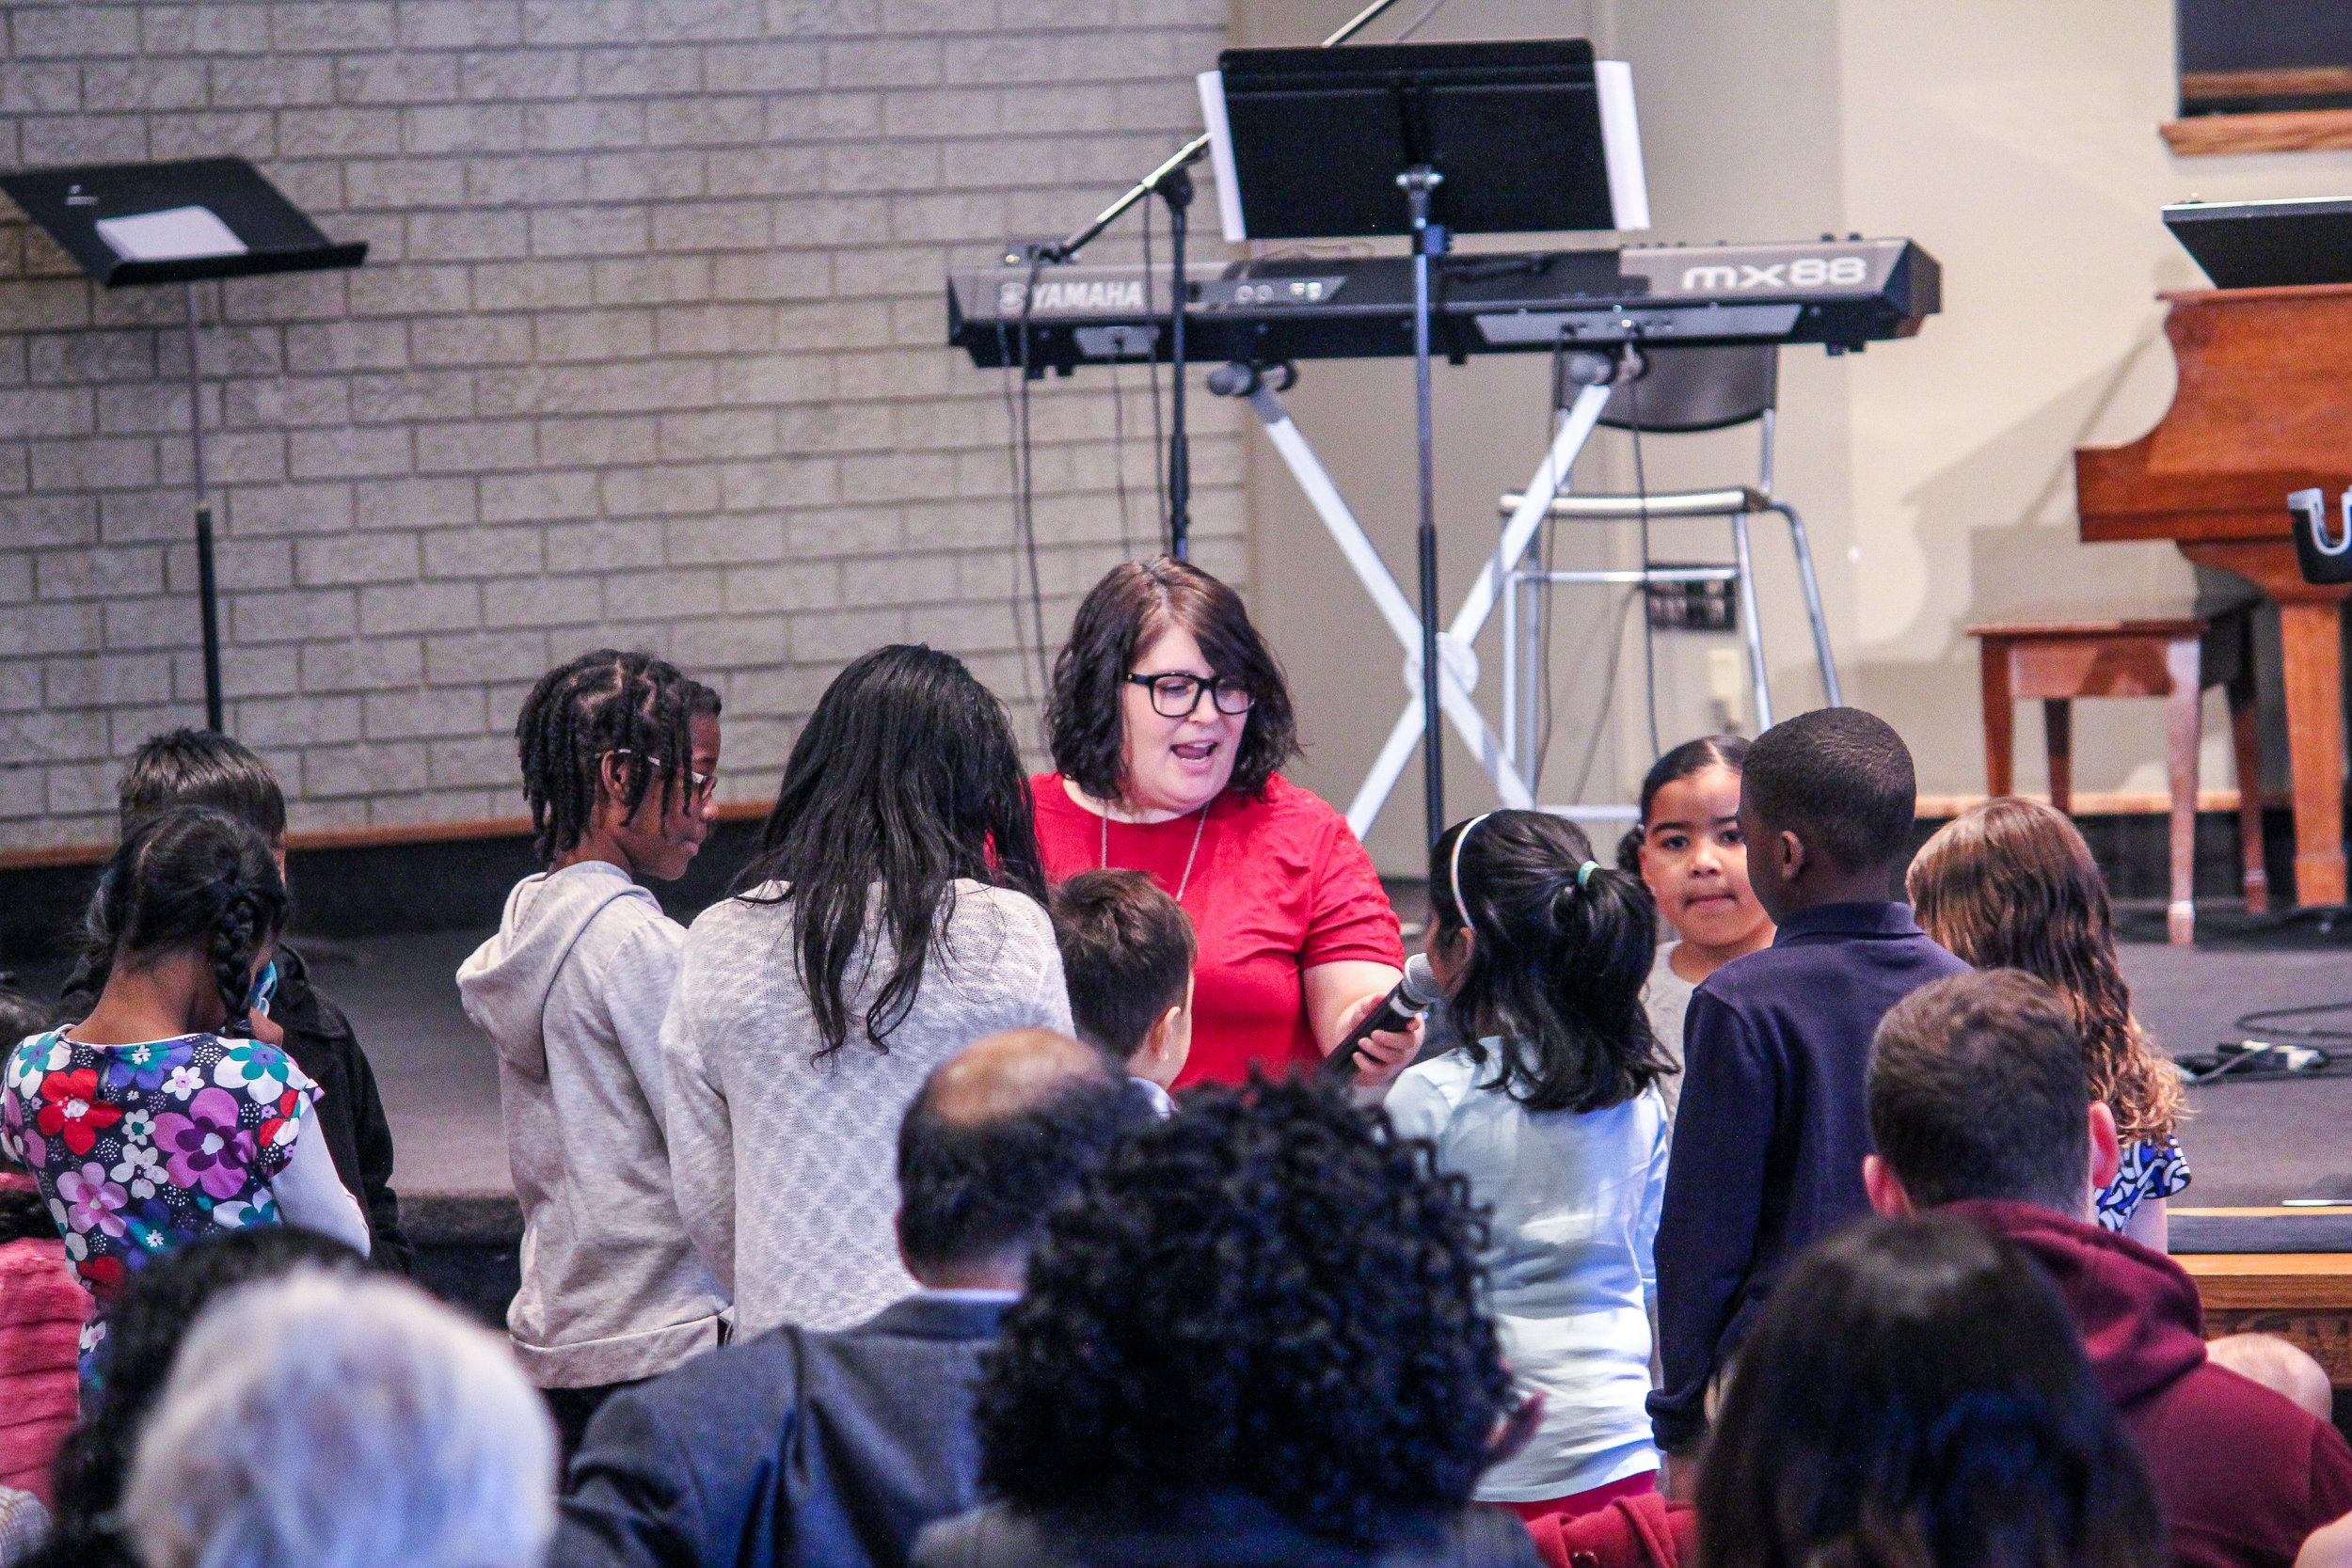 CHILDREN & YOUTH - Passionate about the Next Generation? At willowdalepc children and youth are important to us, and we are committed to the very best of ministry in our willowdalepc Treehouse and Youth programs.Consider serving in our Children & Youth ministry today!